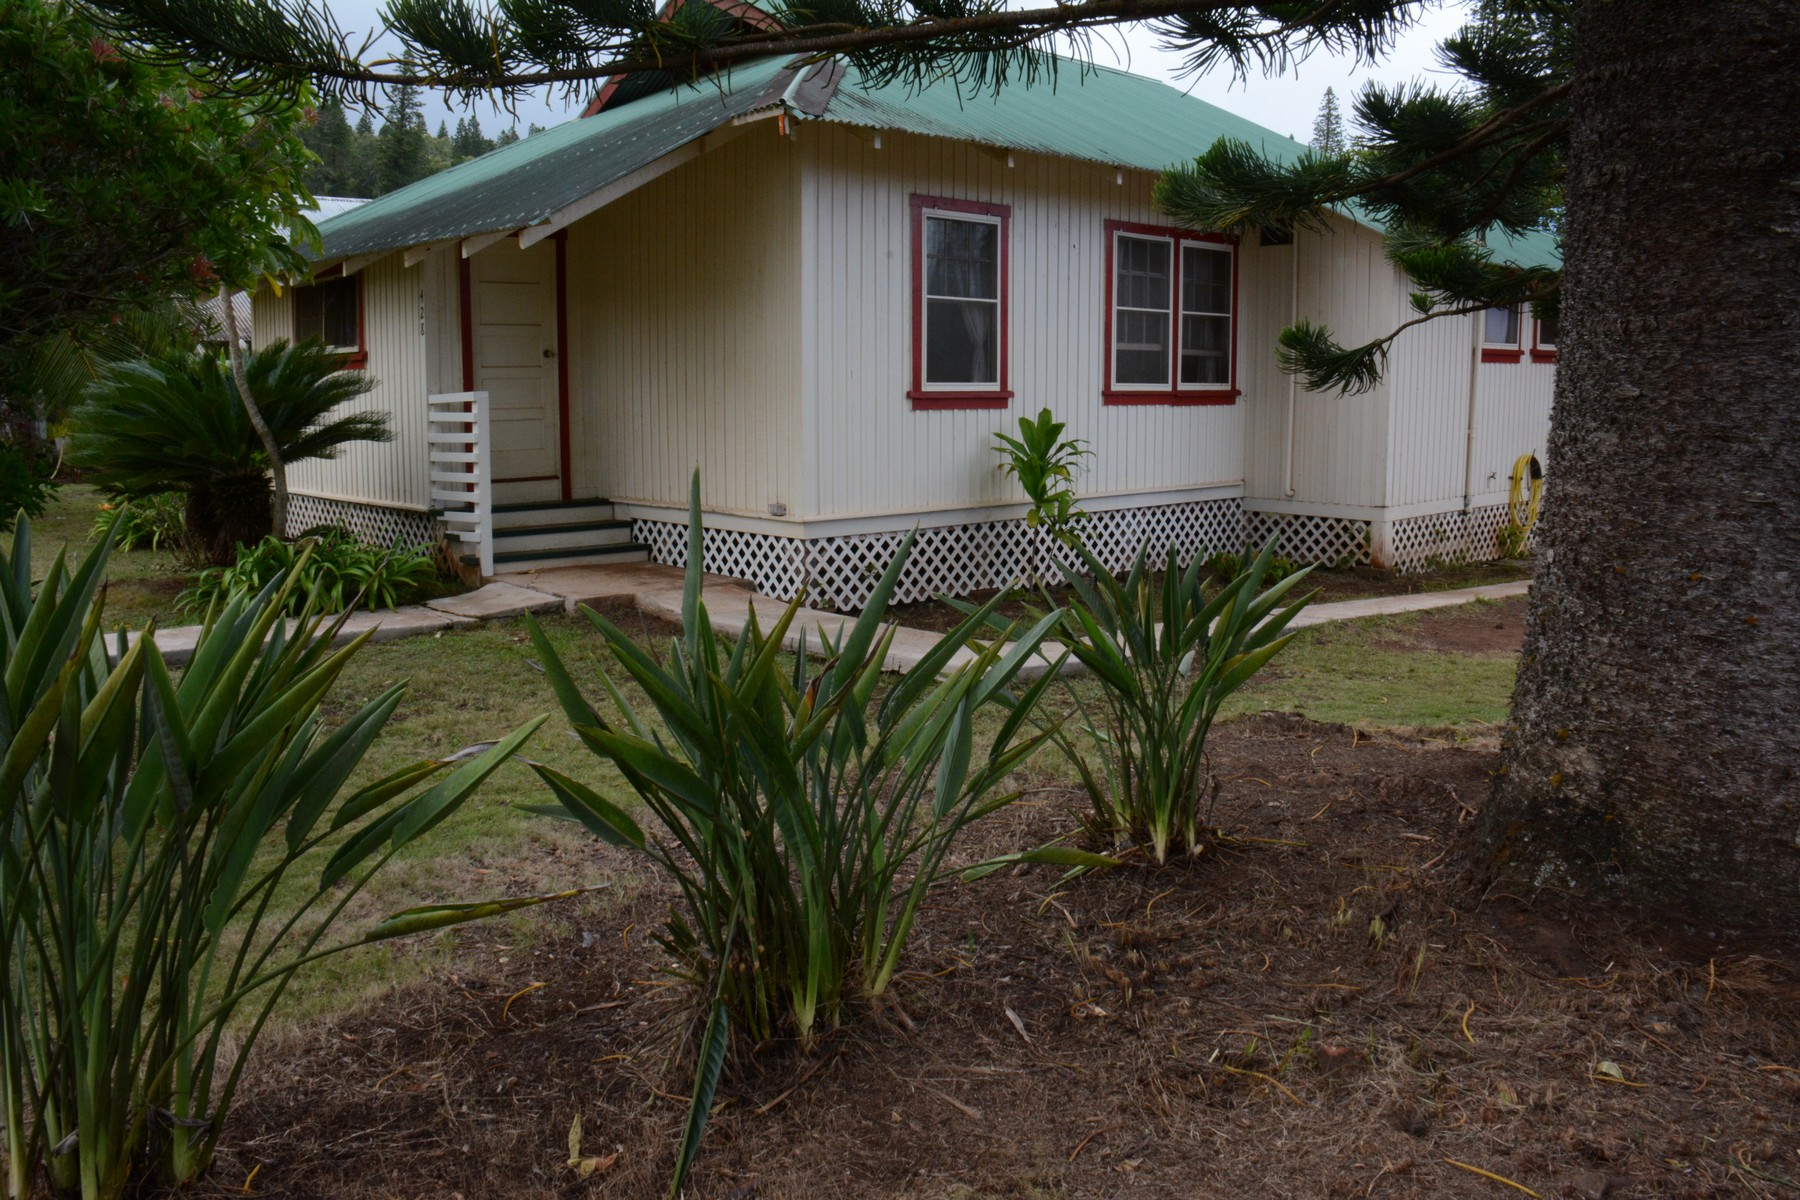 Single Family Home for Sale at Lanai Plantation Home Get-A-Way 428 Fifth Street Lanai City, Hawaii 96763 United States